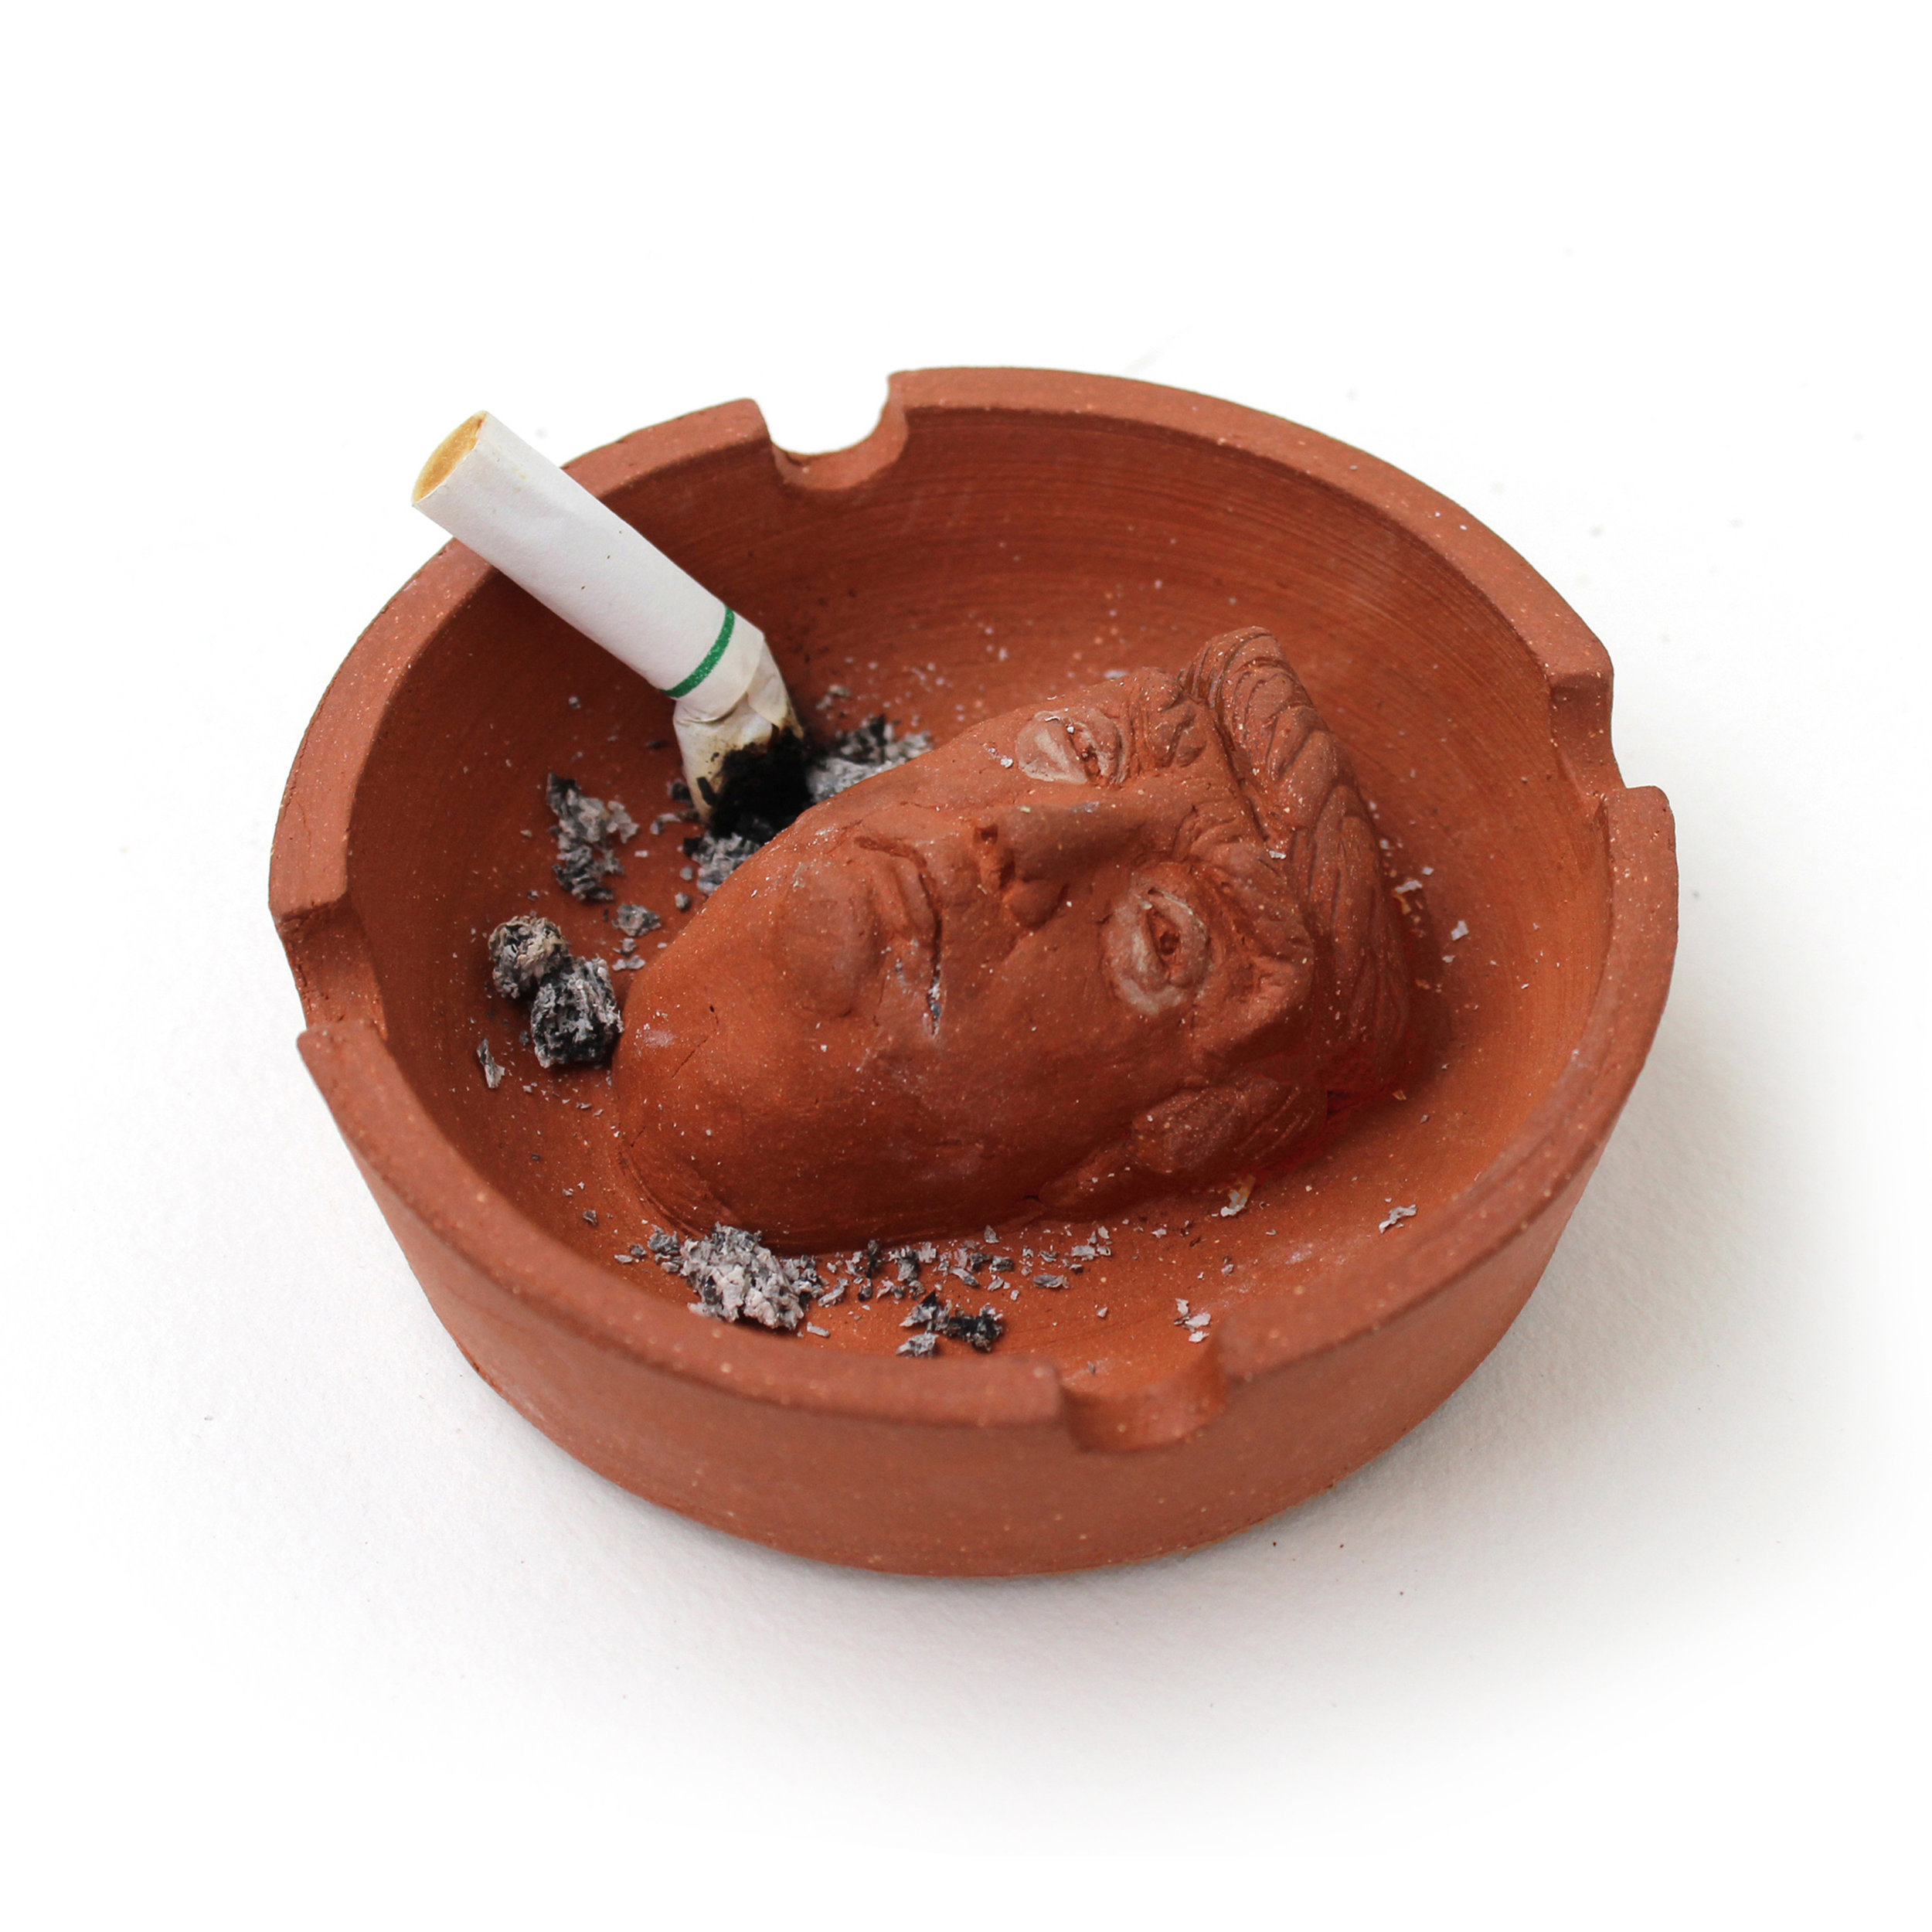 "+++ CURRENTLY OUT OF STOCK +++ RESTOCKING SHORTLY FOR THE HOLIDAYS! HANG TIGHT!! CHECK BACK!! +++   Wheel thrown terra-cotta ashtray with press-molded (butt)head. Approximately 3.75"" diameter by 1.25"" height"